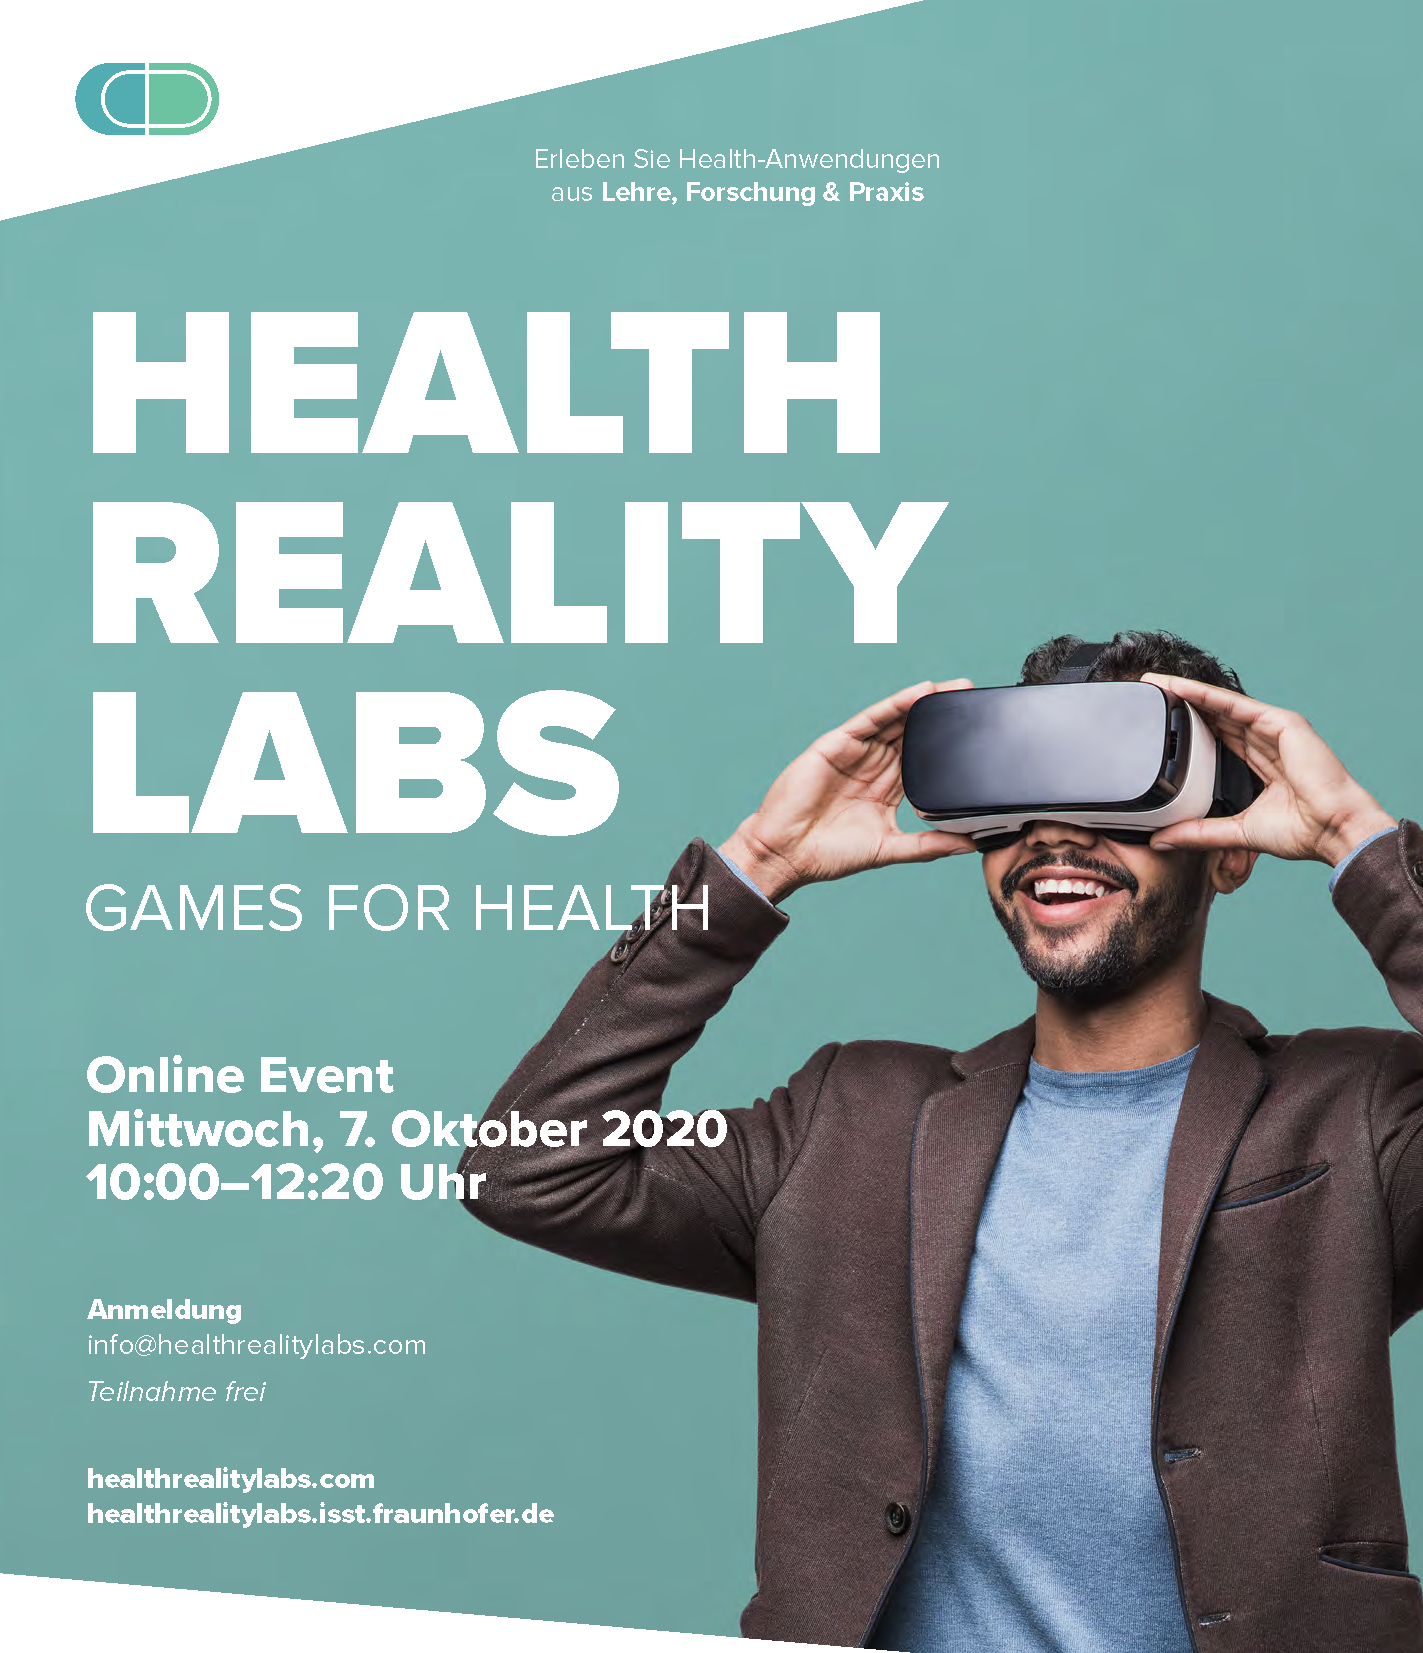 You are currently viewing 2. Online Event Health Reality Labs: Games for Health